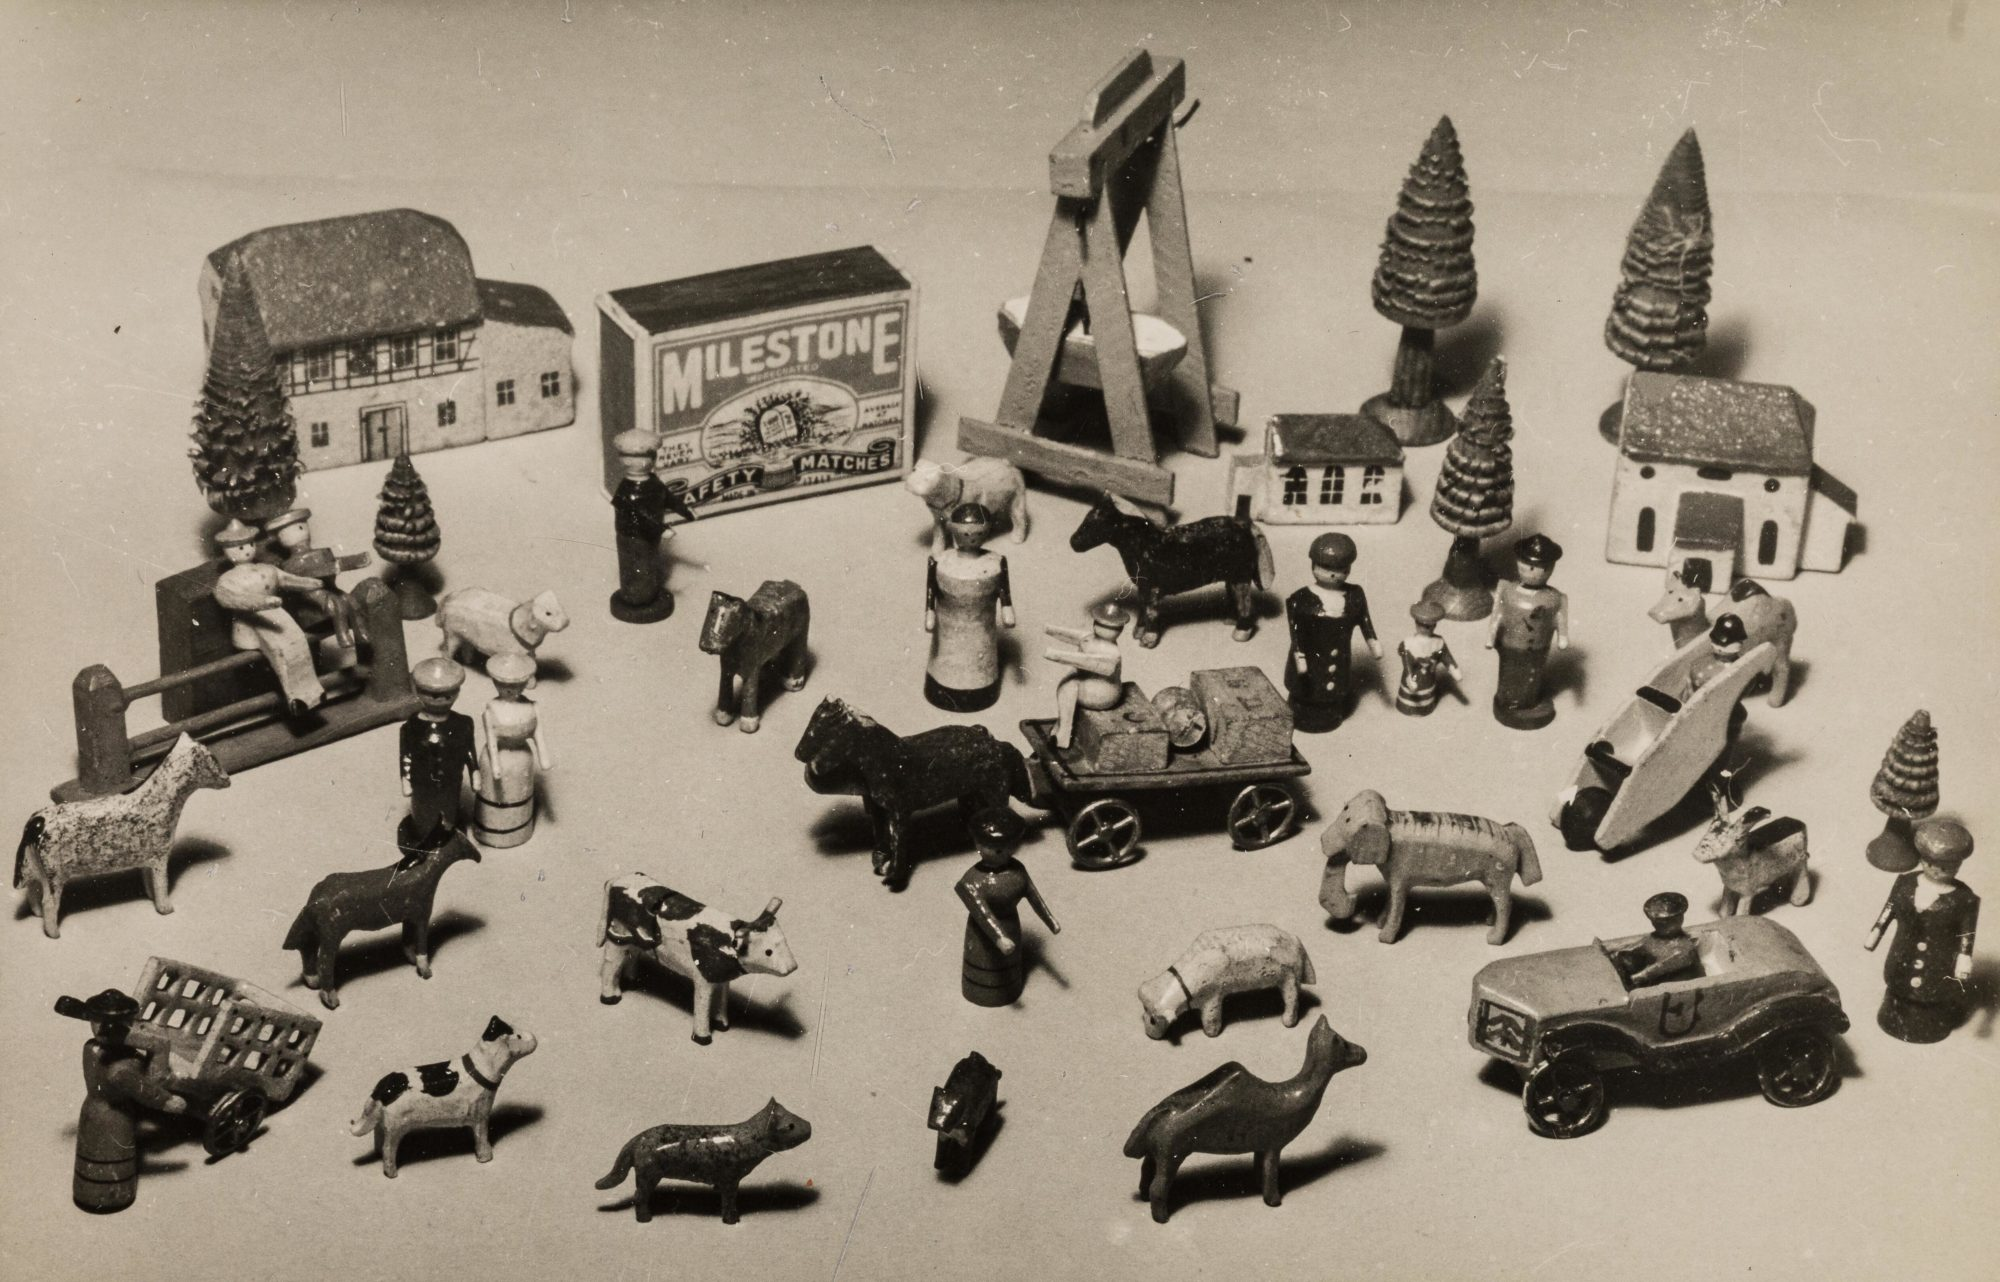 Photograph of wooden toys of the type Klein used with her child patients, including cars, animals and people